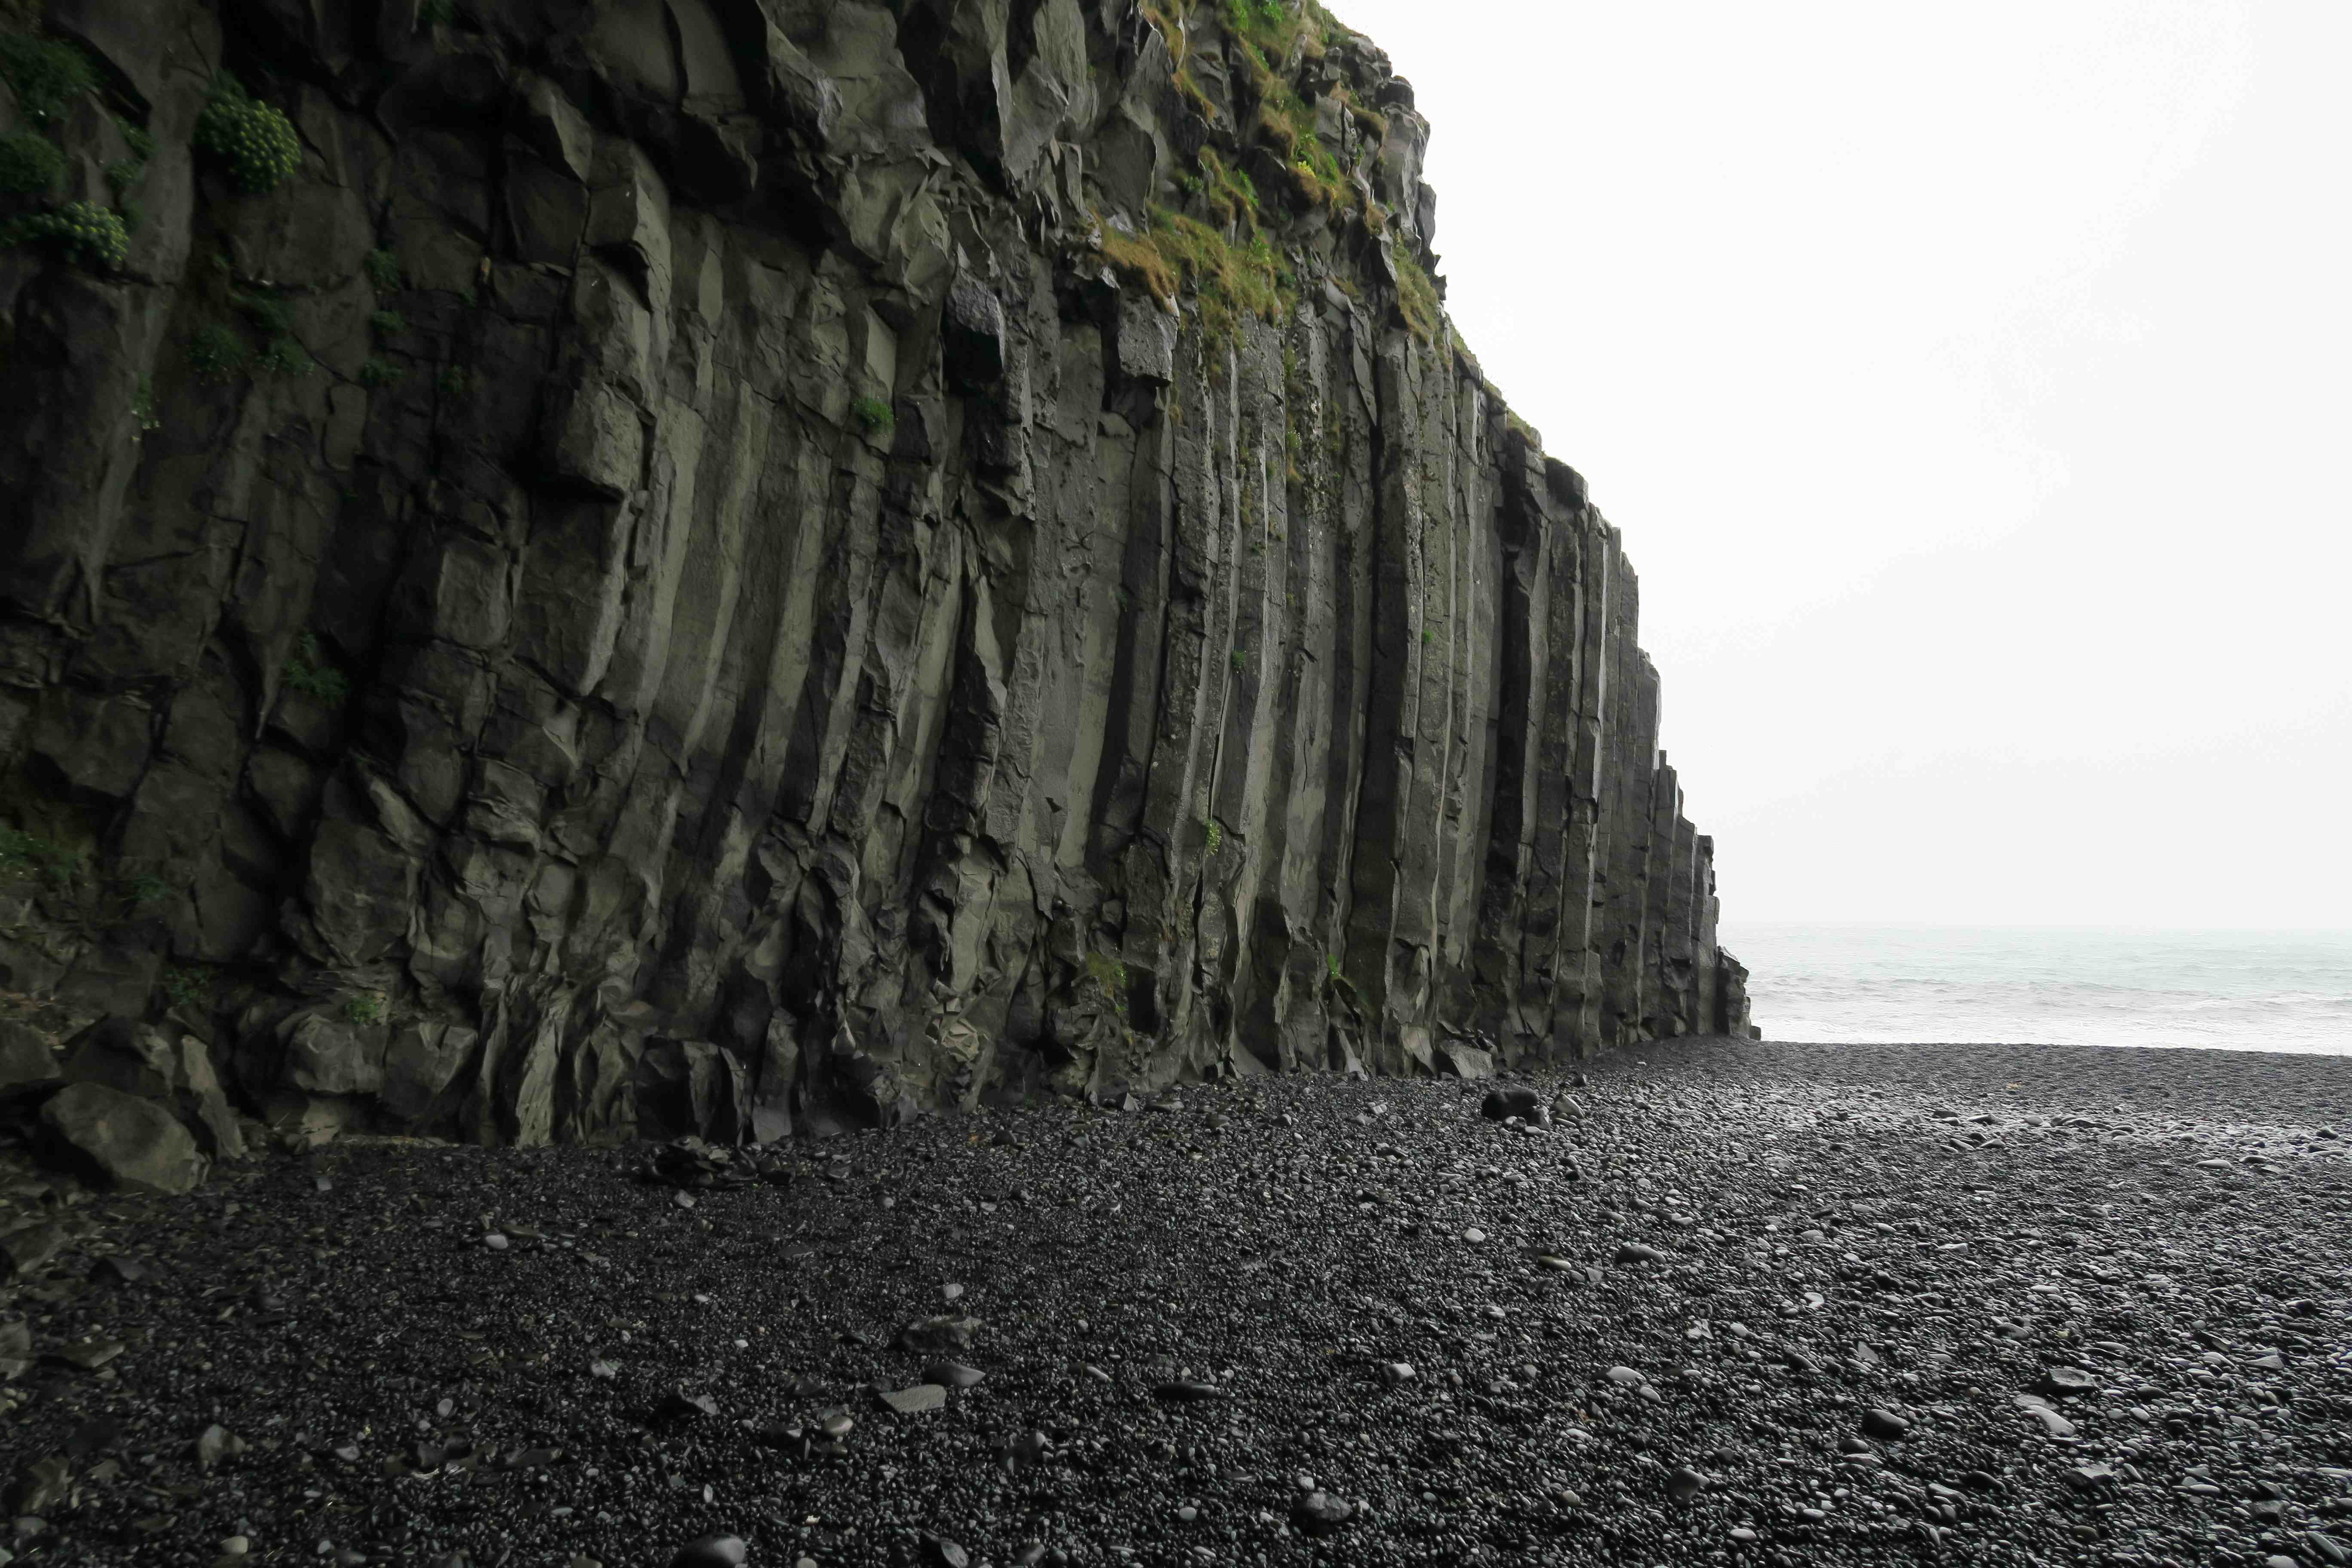 02 Reynisfjara 1024x683 - 7 Gems You Must See in South Iceland